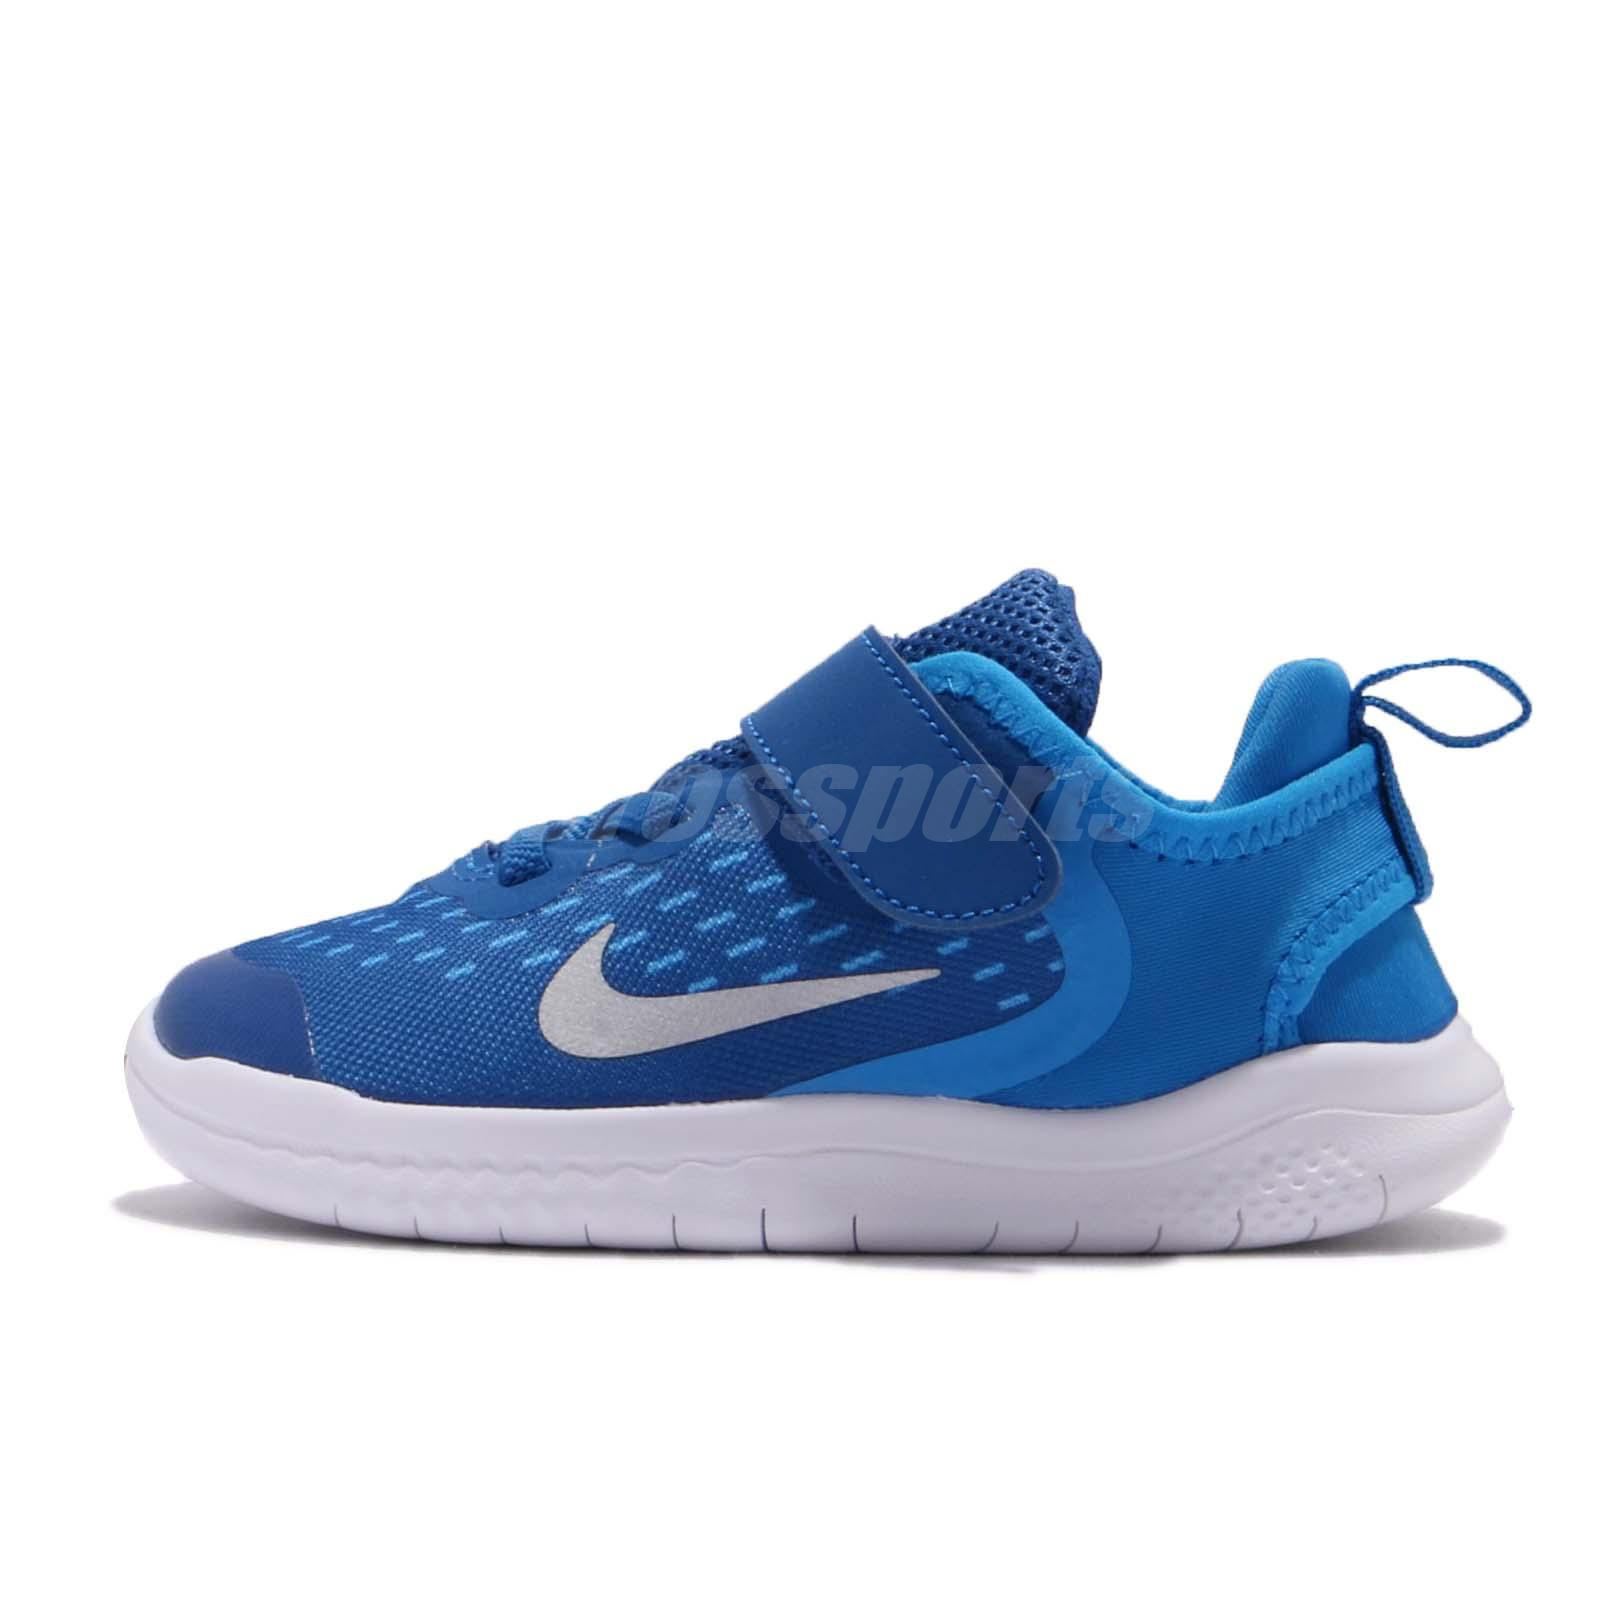 on feet images of online shop united kingdom Details about Nike Free RN 2018 TDV Blue White Toddler Infant Baby Shoes  Sneakers AH3453-401